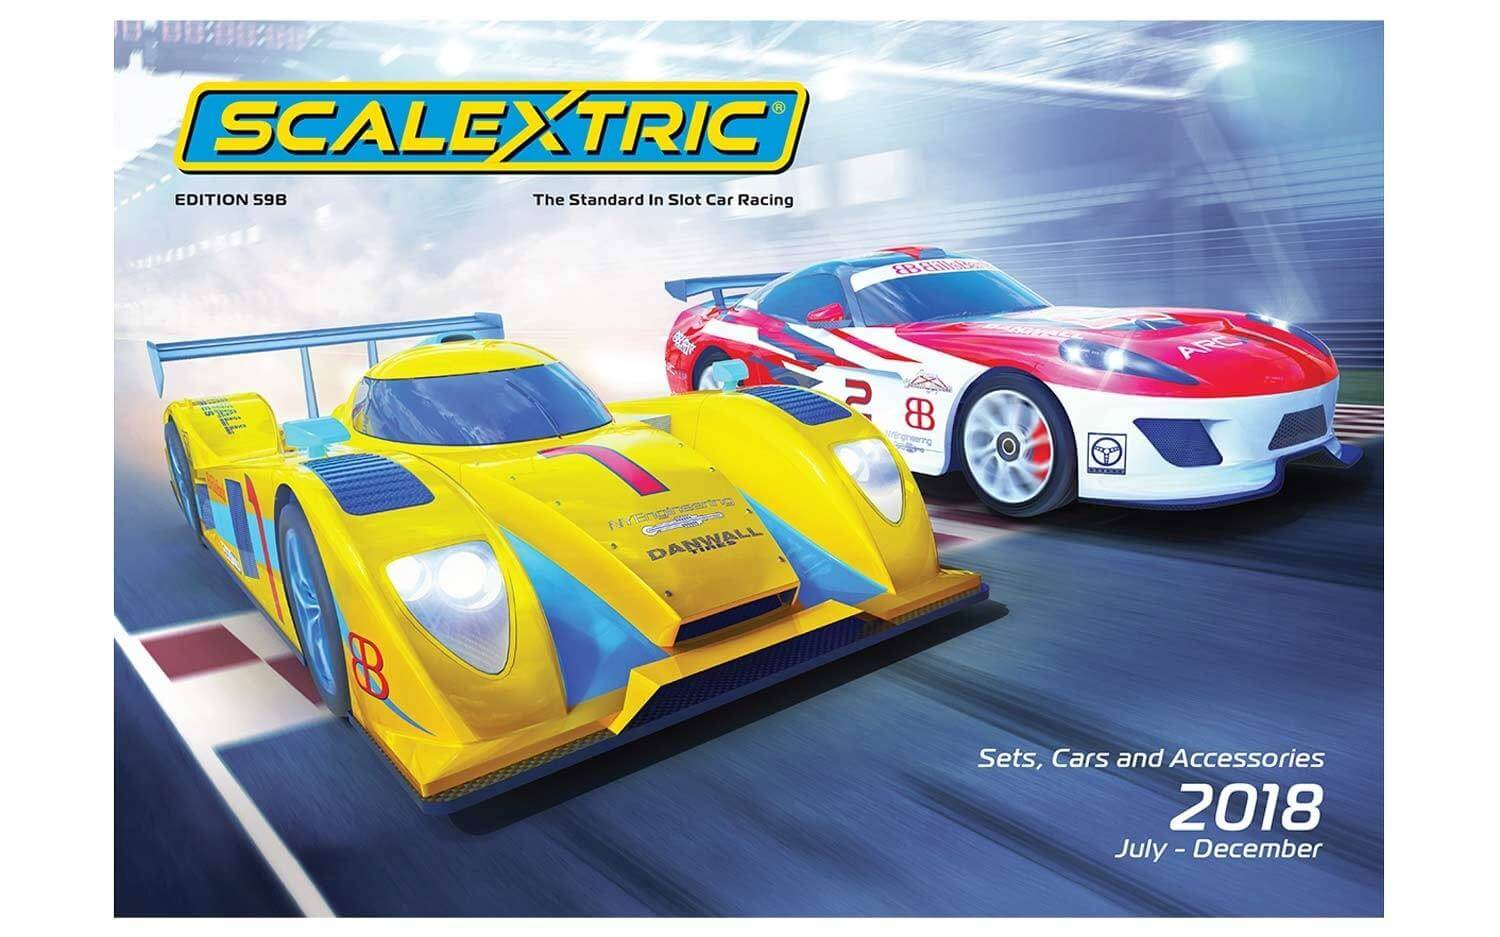 C8183 Scalextric 2018 Product Catalog July-December, Edition 59B